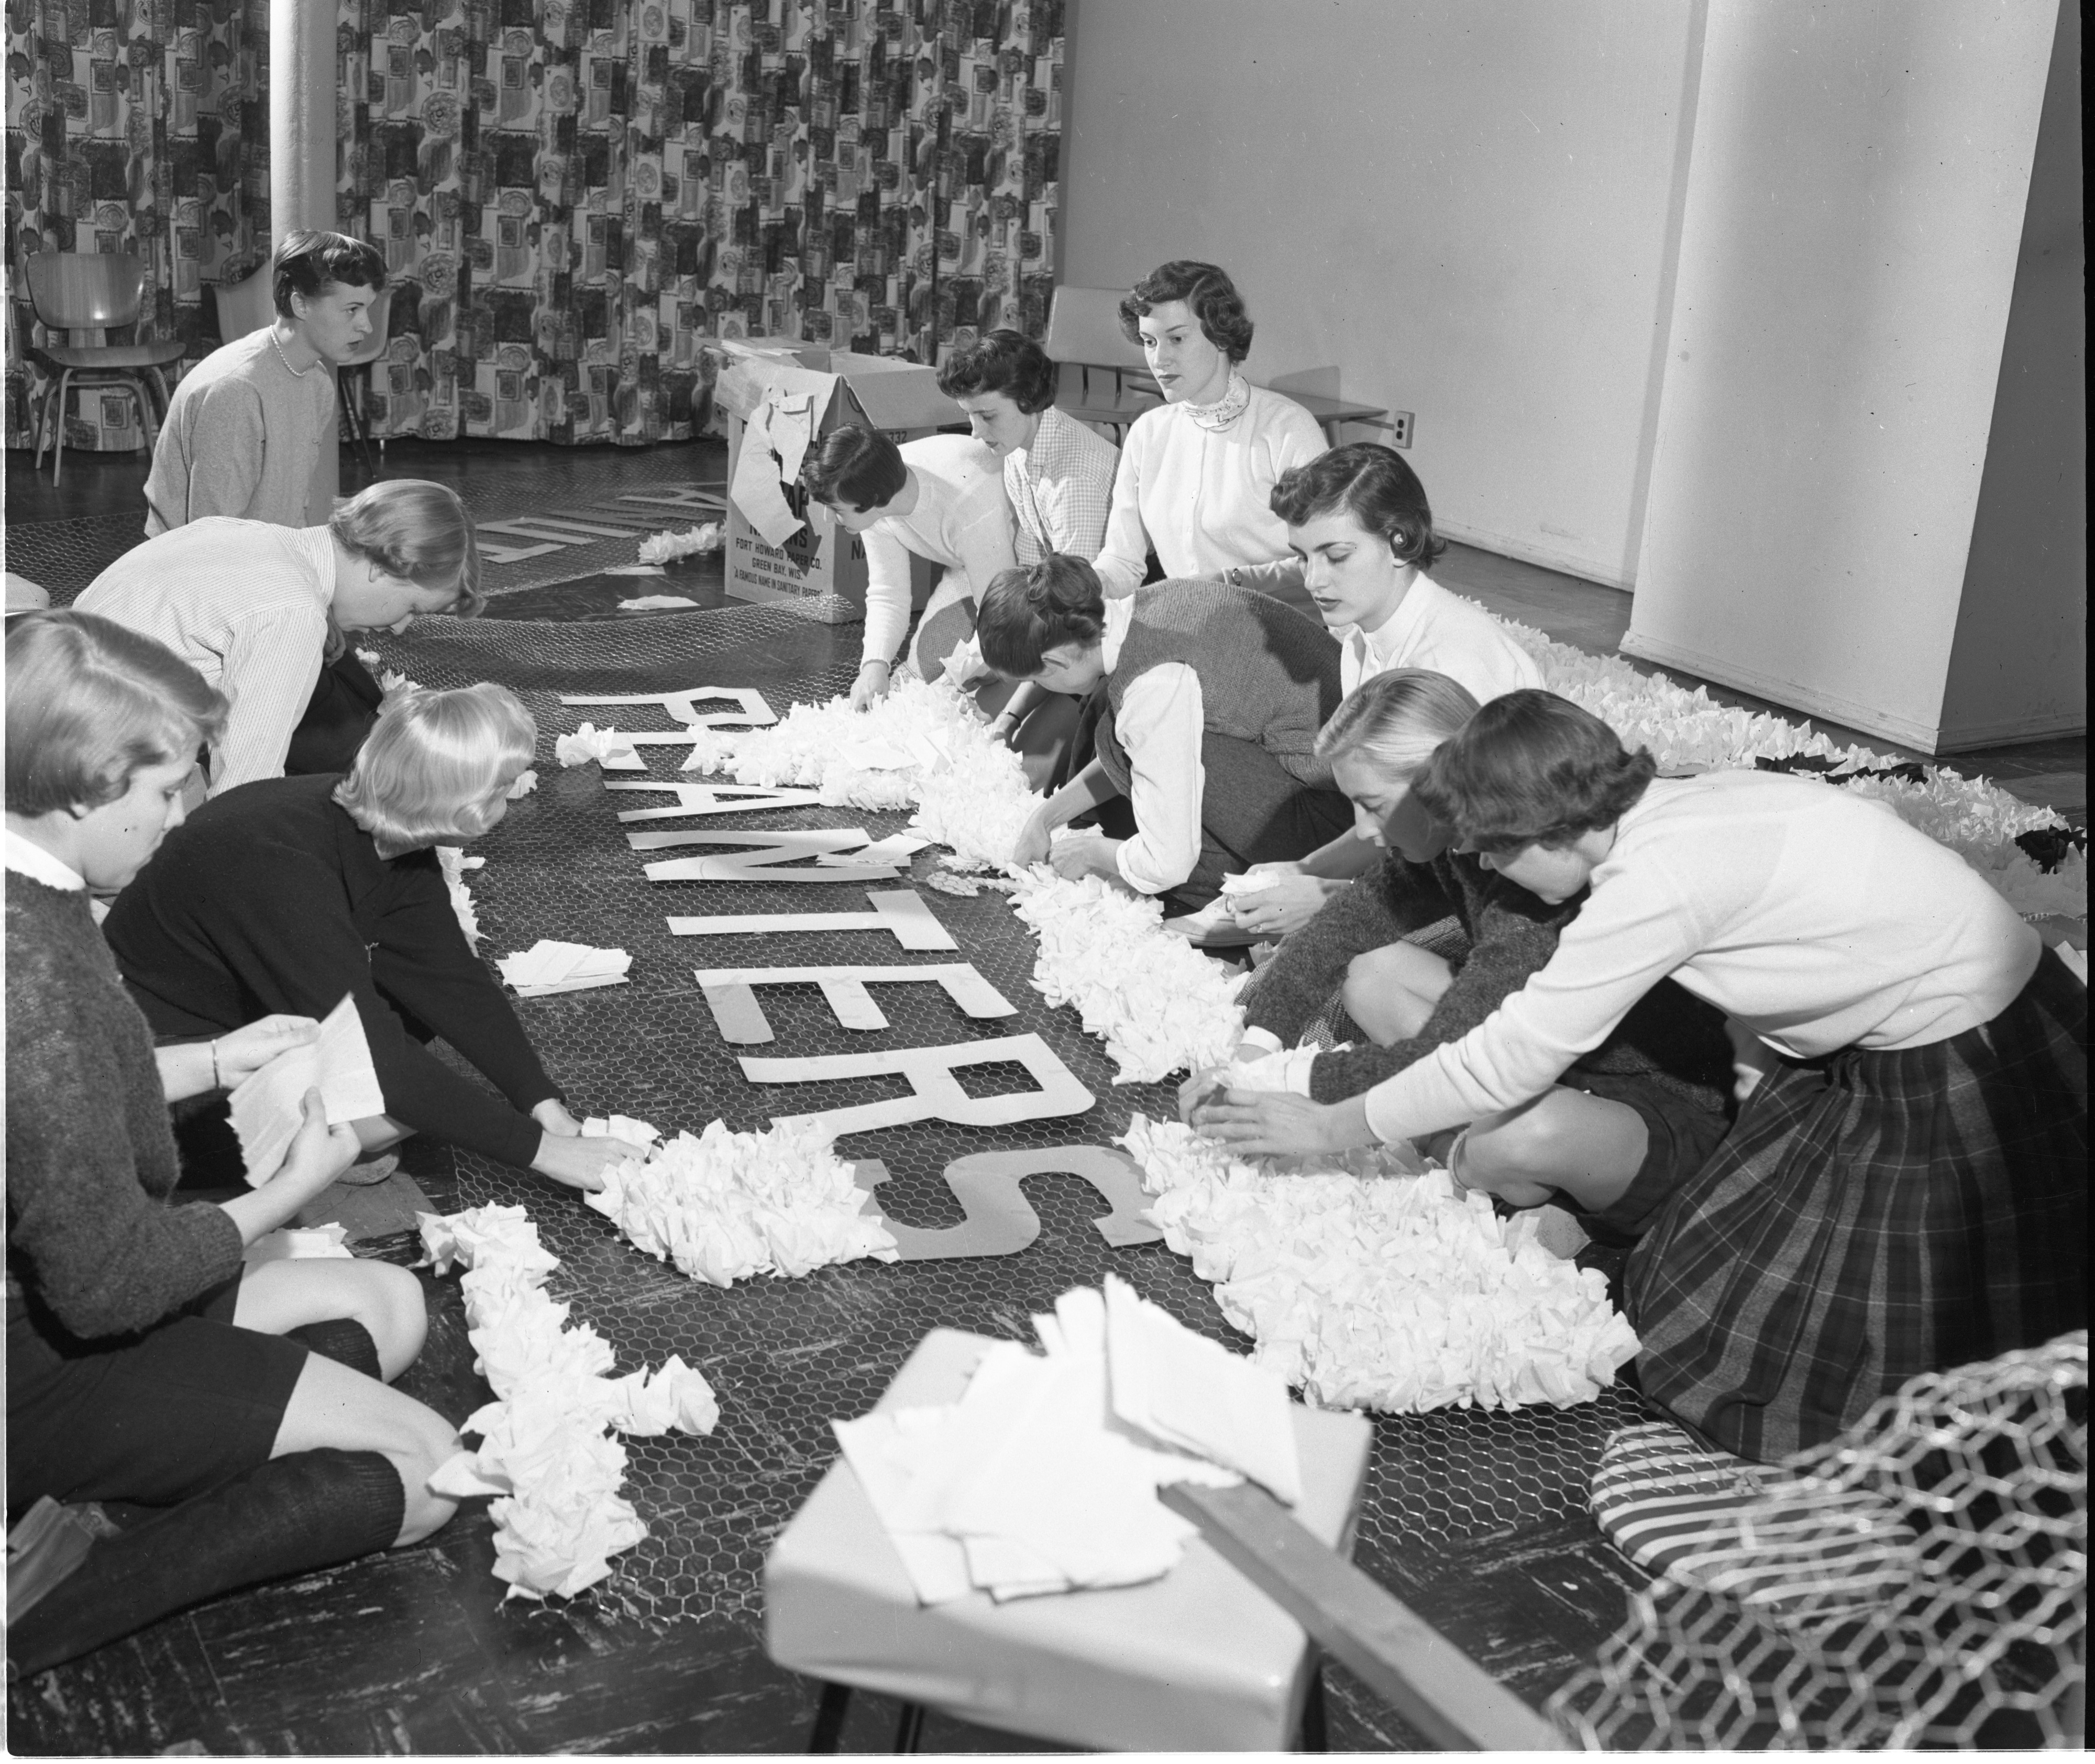 Alpha Delta Pi Sorority Sisters Work On Their Homecoming Display, October 1955 image